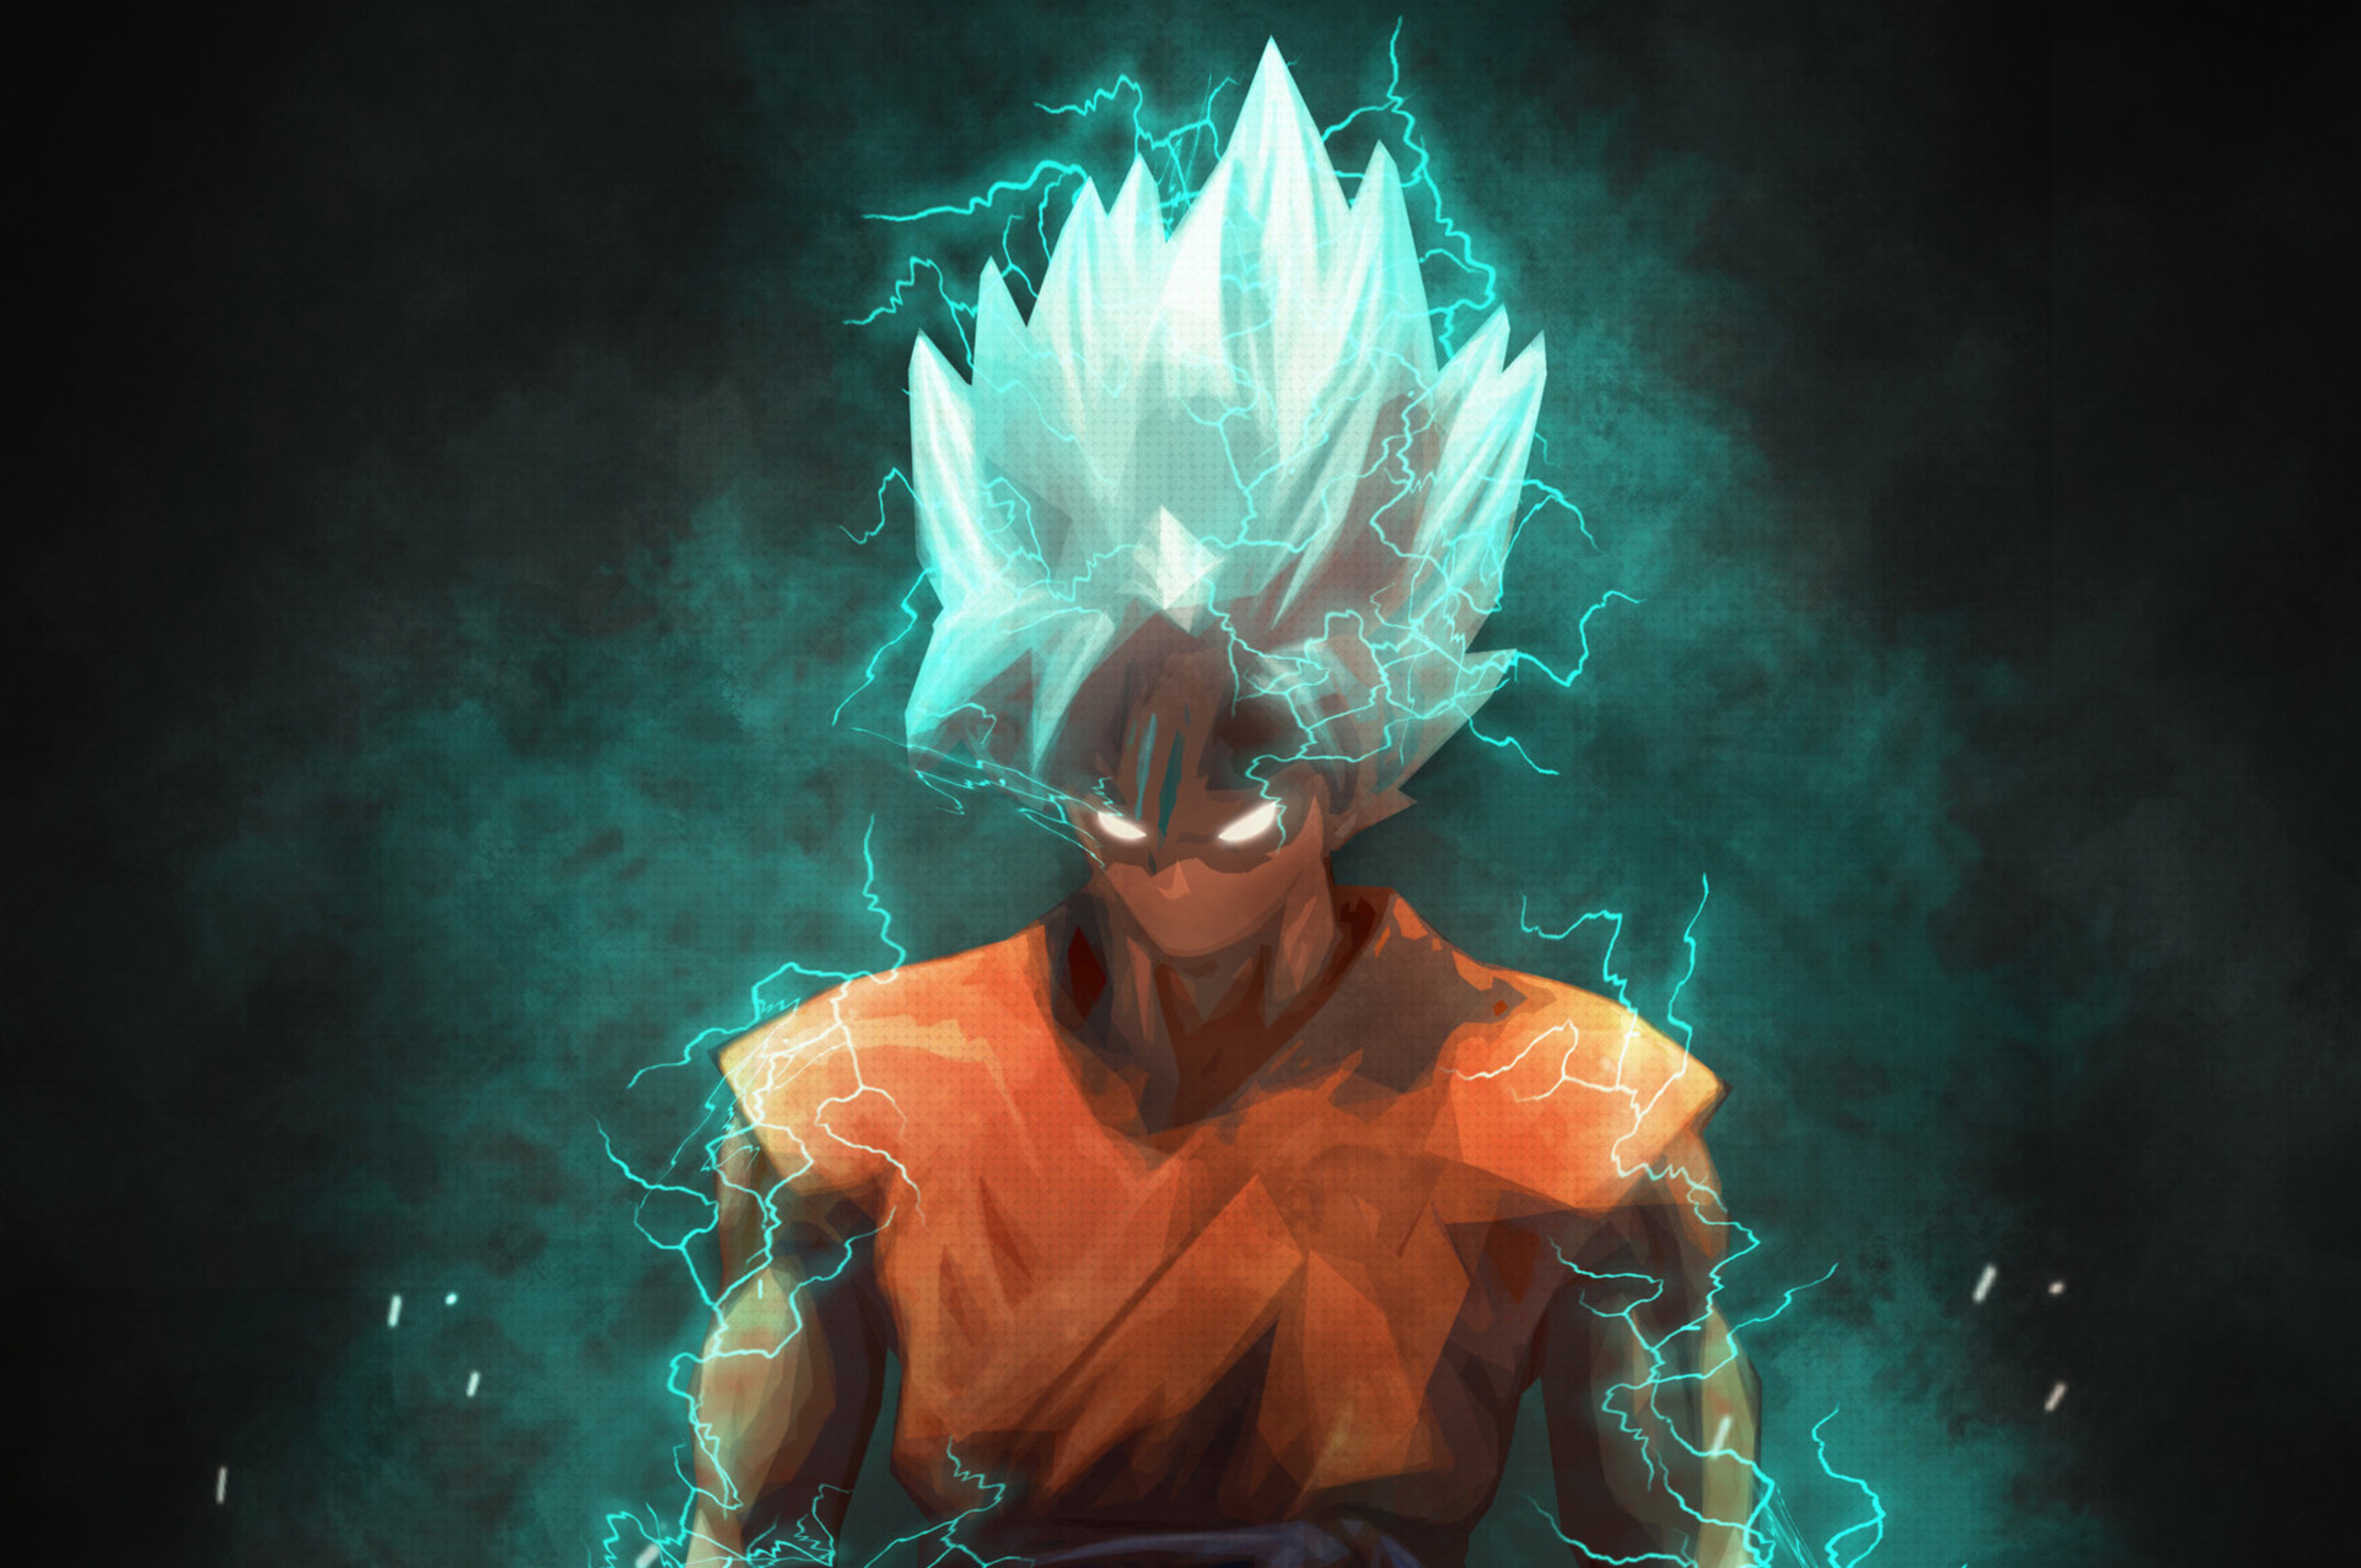 2560x1700 Saiyan God Chromebook Pixel Hd 4k Wallpapers Images Backgrounds Photos And Pictures